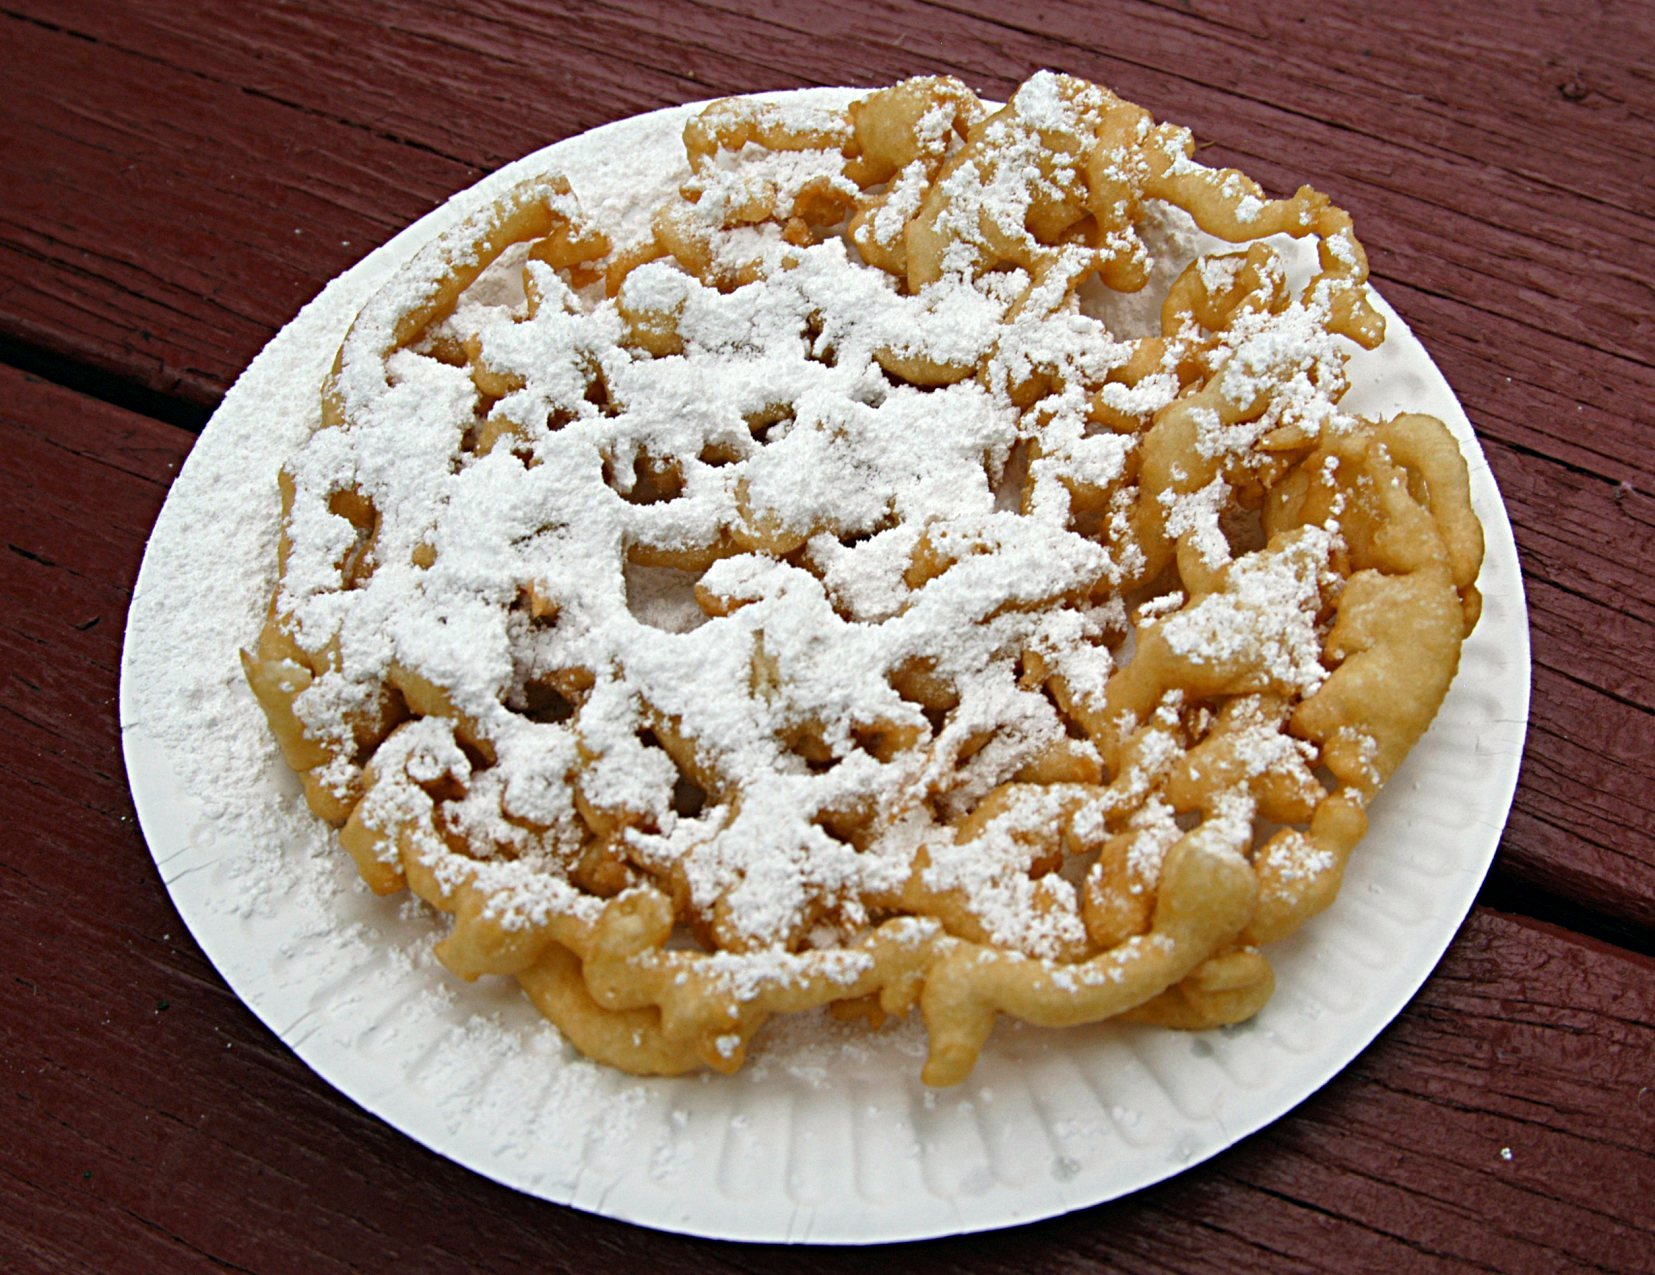 Description Funnel cake 20040821 172200 1.1655x1275.jpg